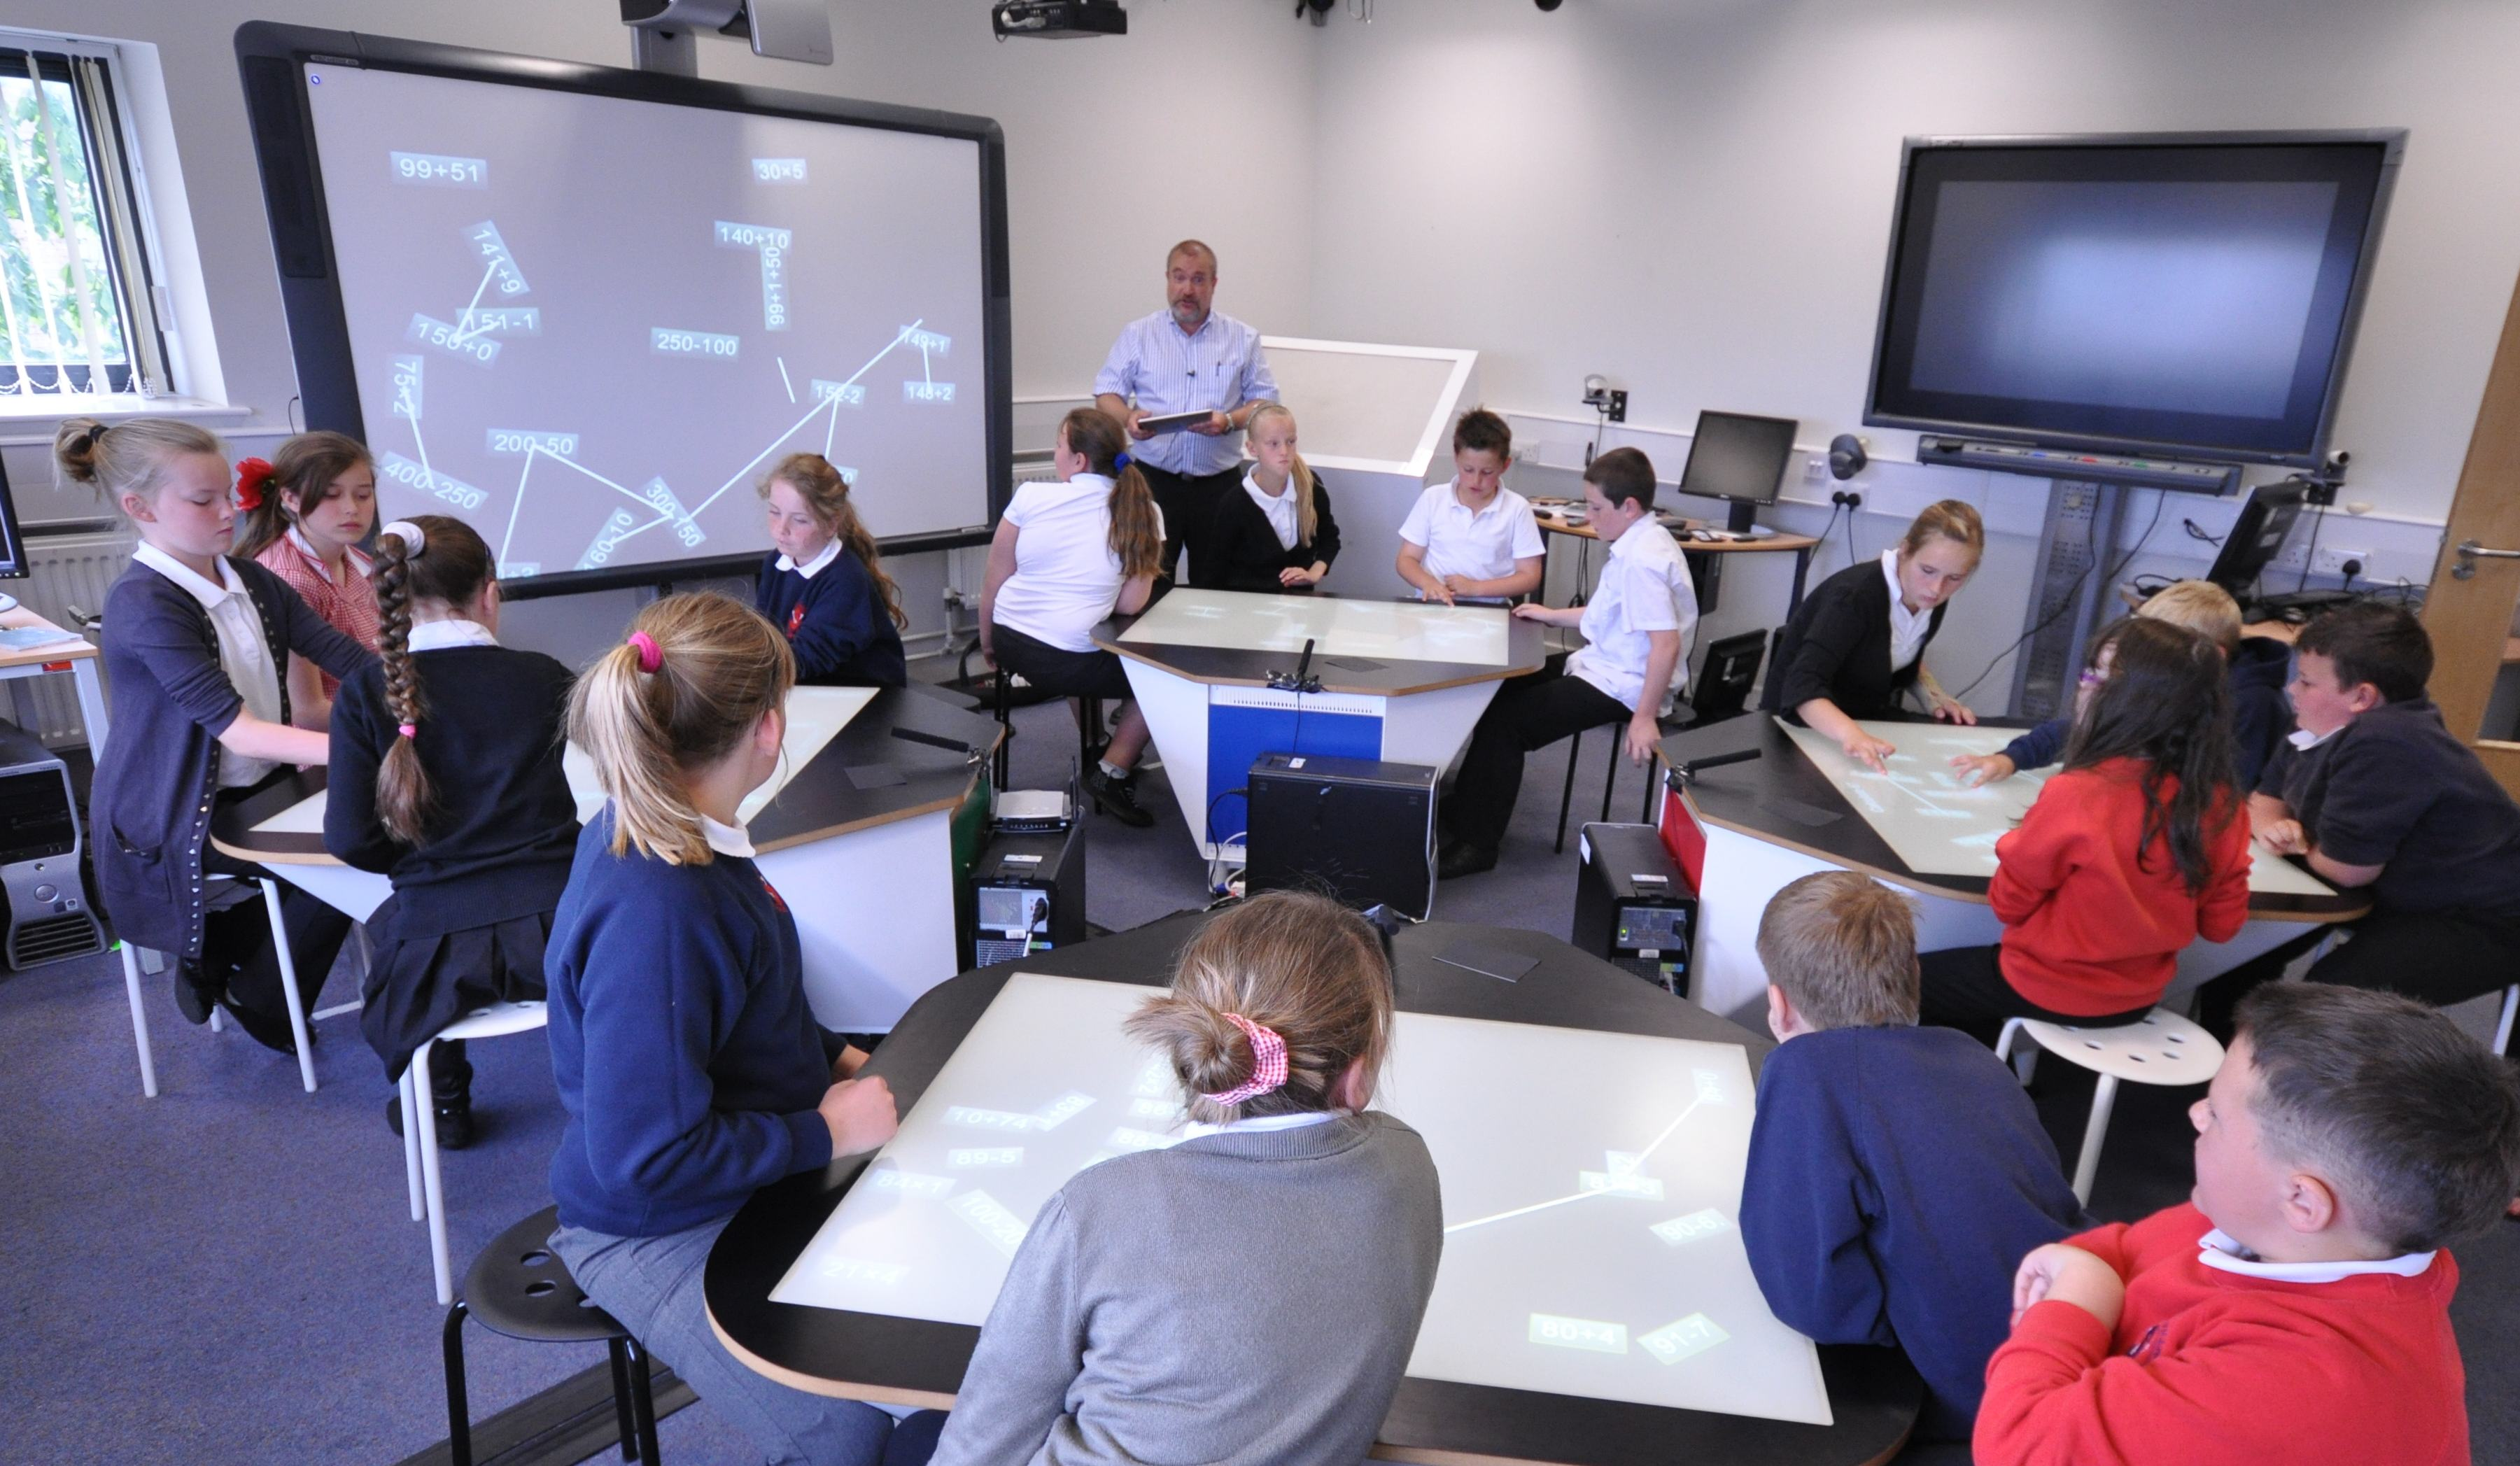 Multitouch Desks